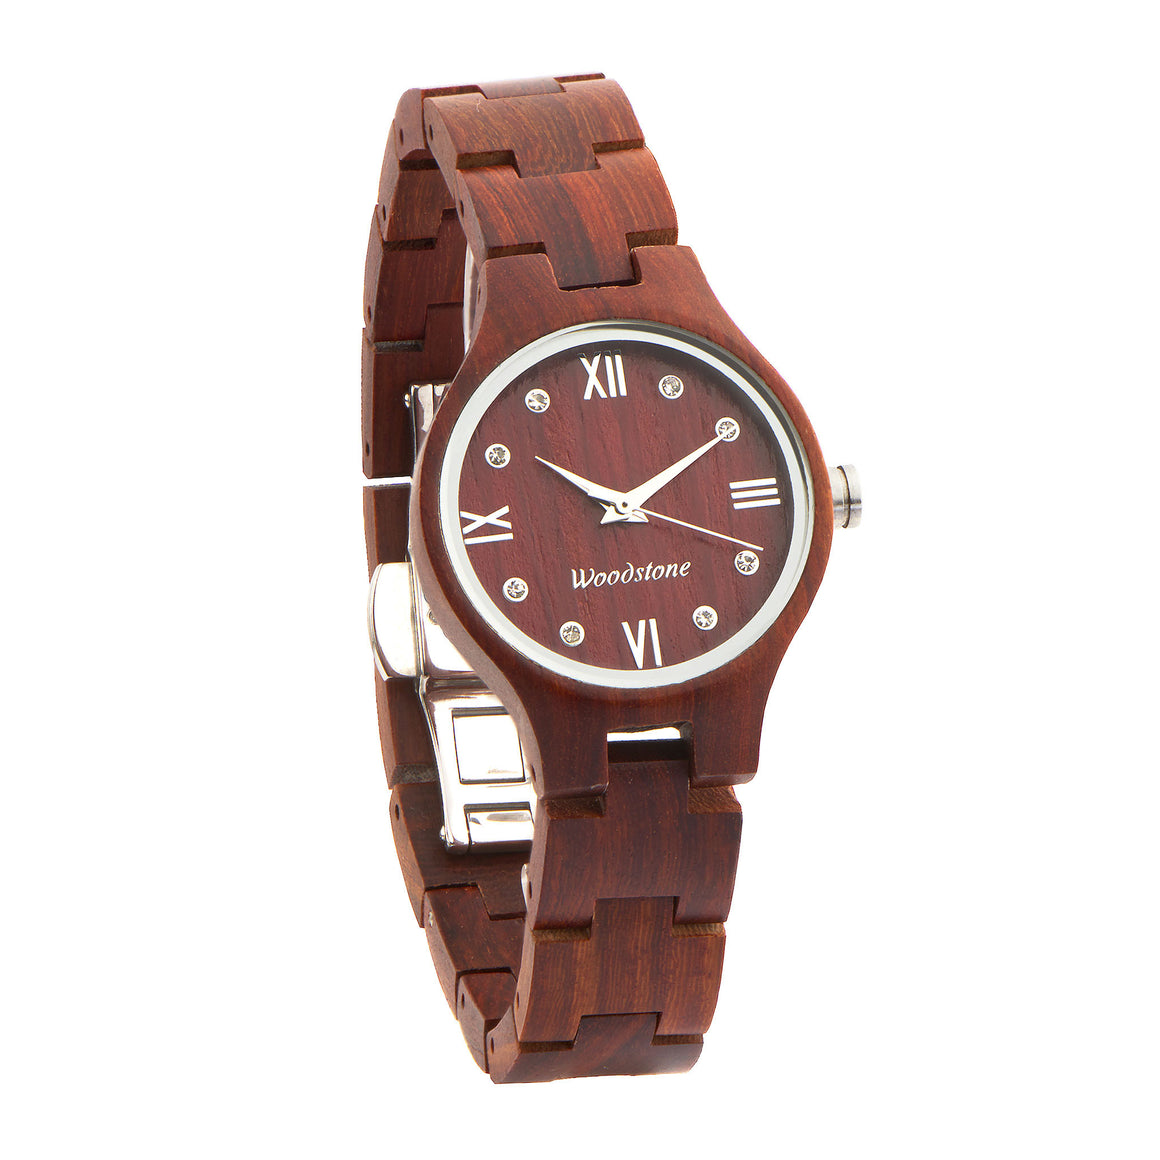 Queen rose wood wooden watch